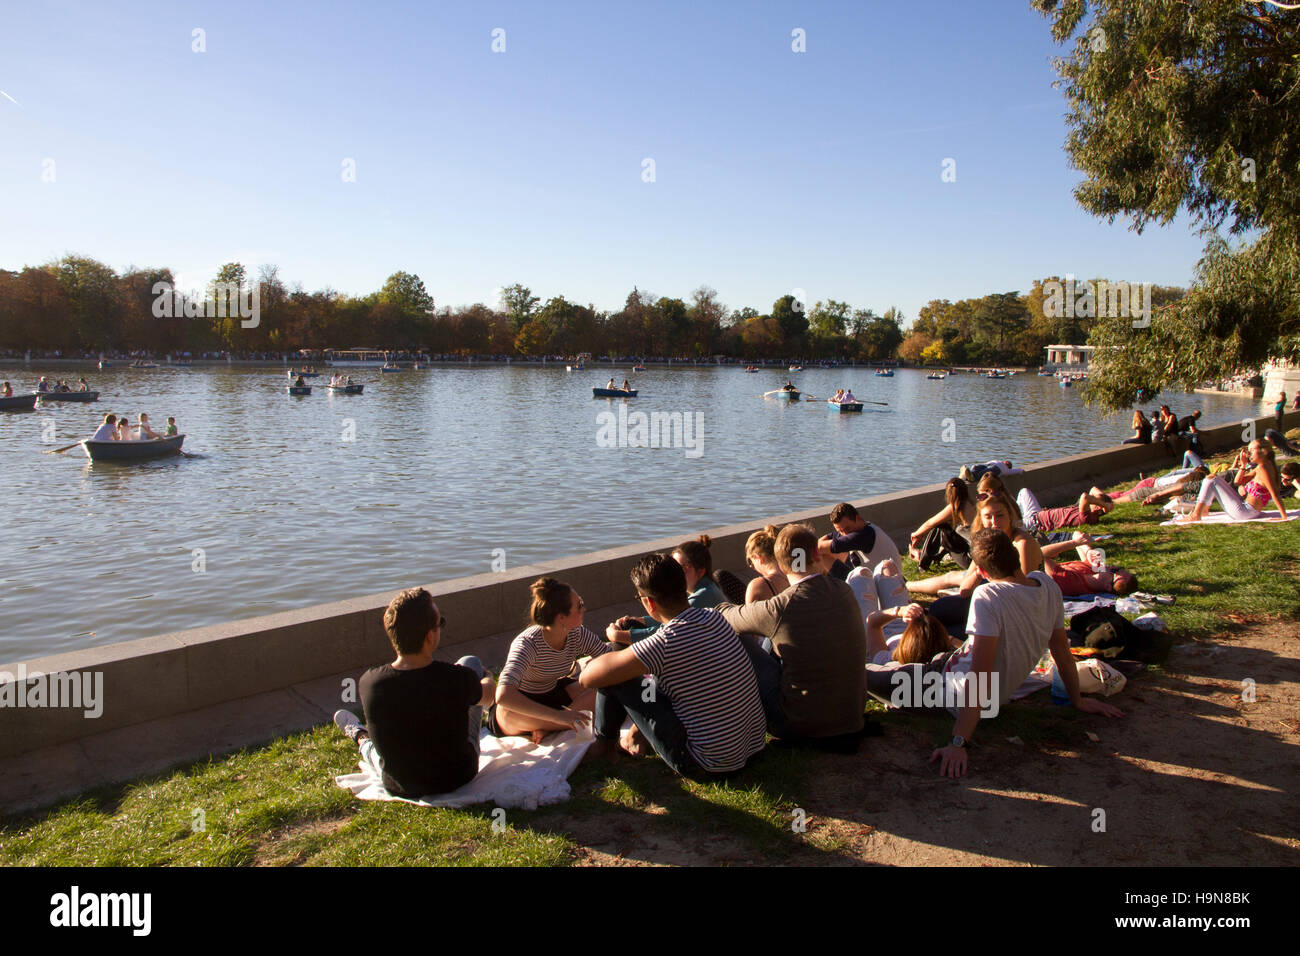 Madrid Spain Park of Retiro tourists visiting day lake scene young sitting on sun in a sunny day - Stock Image